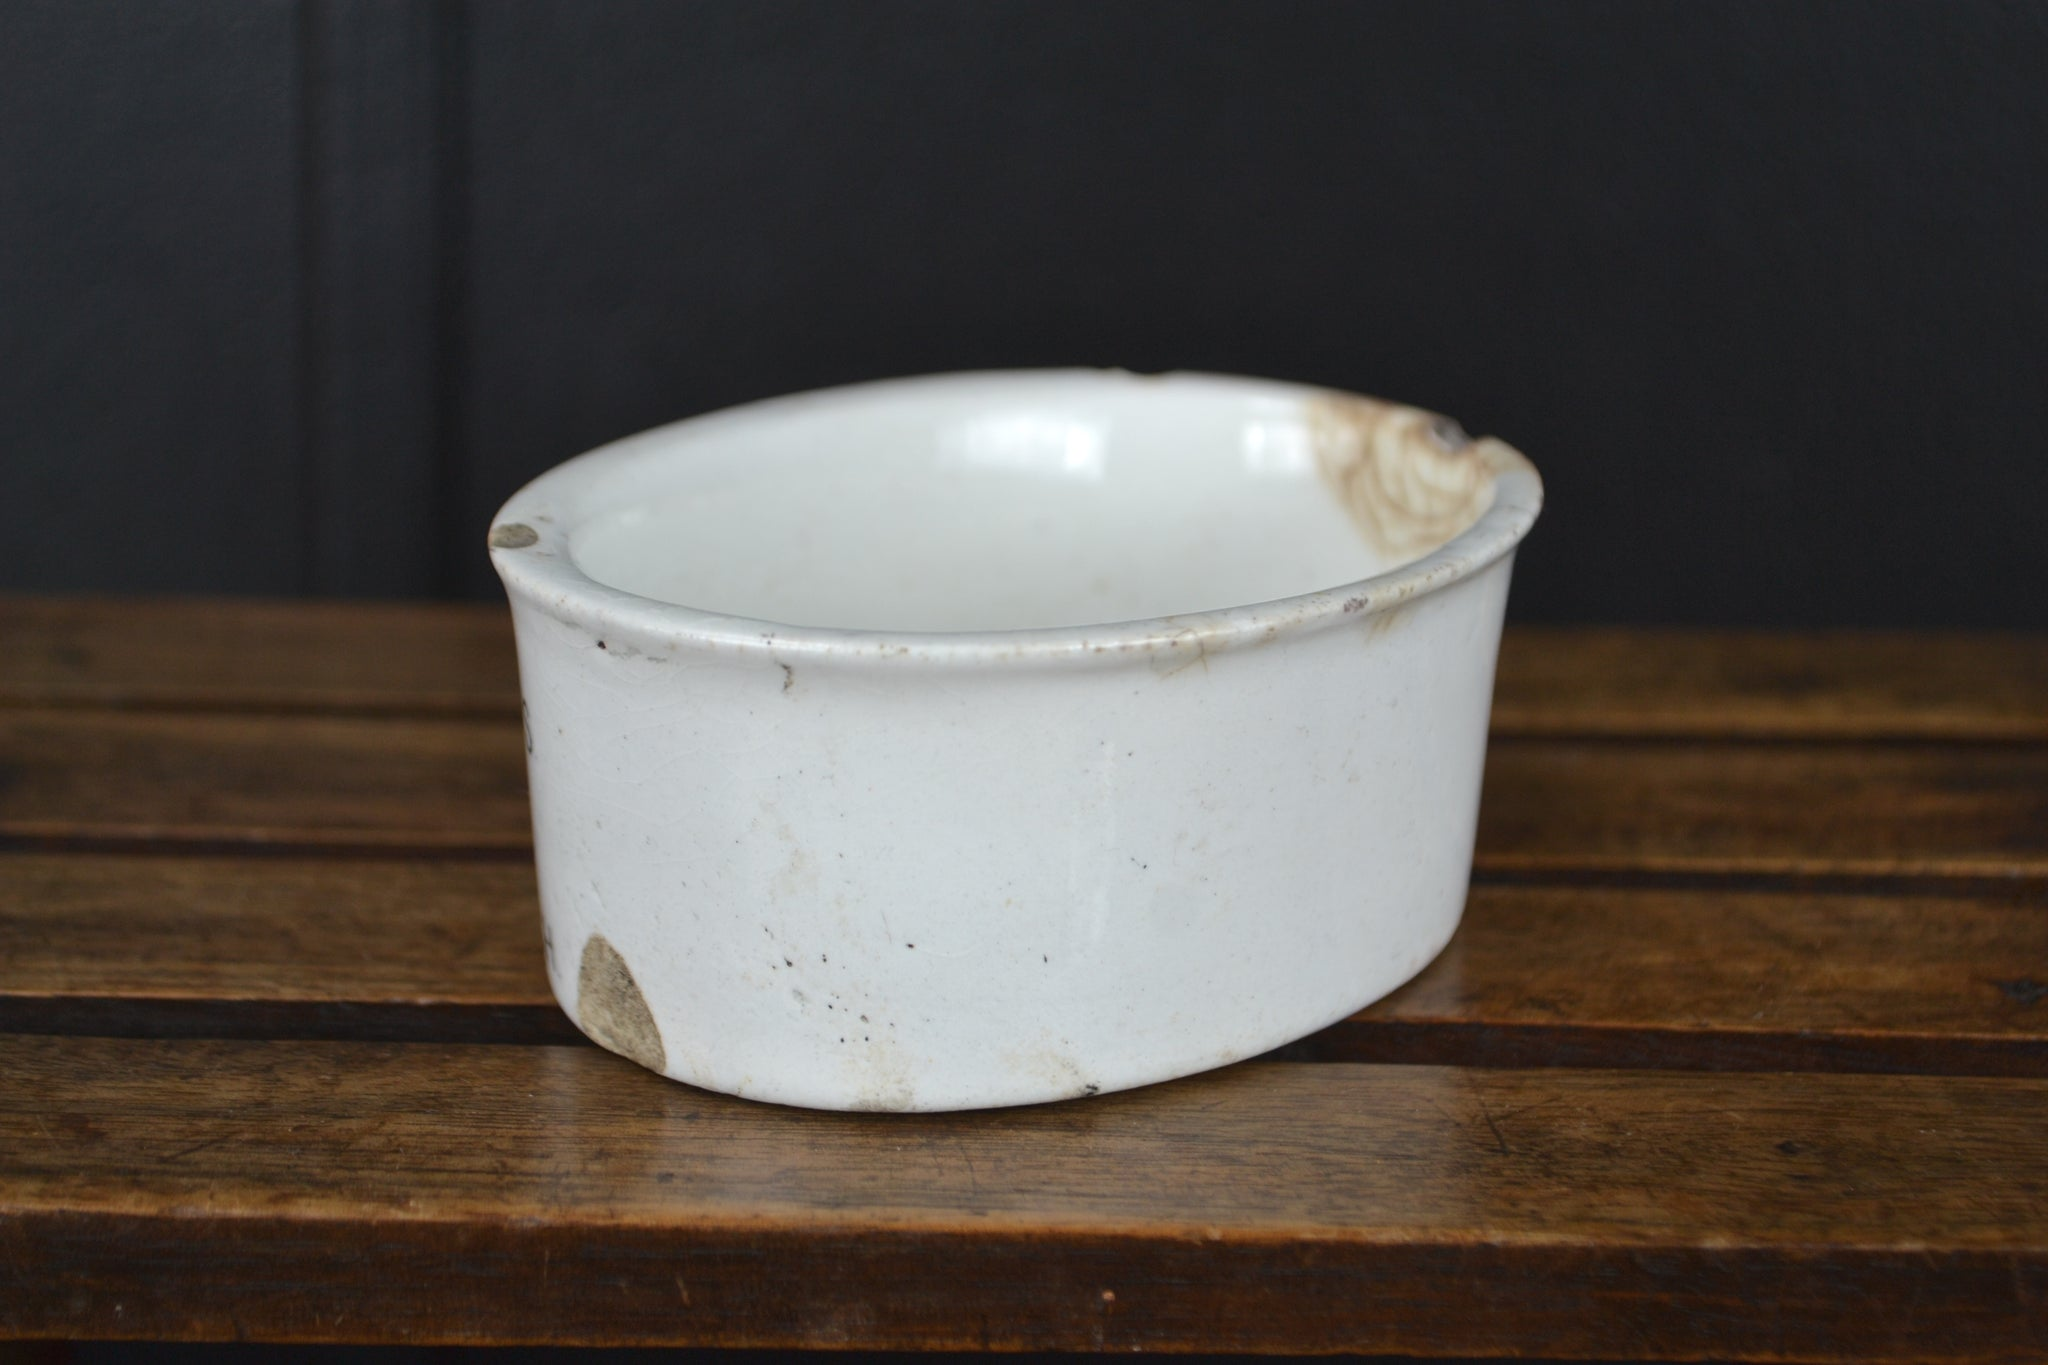 SOLD - Victorian Celebrated Potted Meats Pot